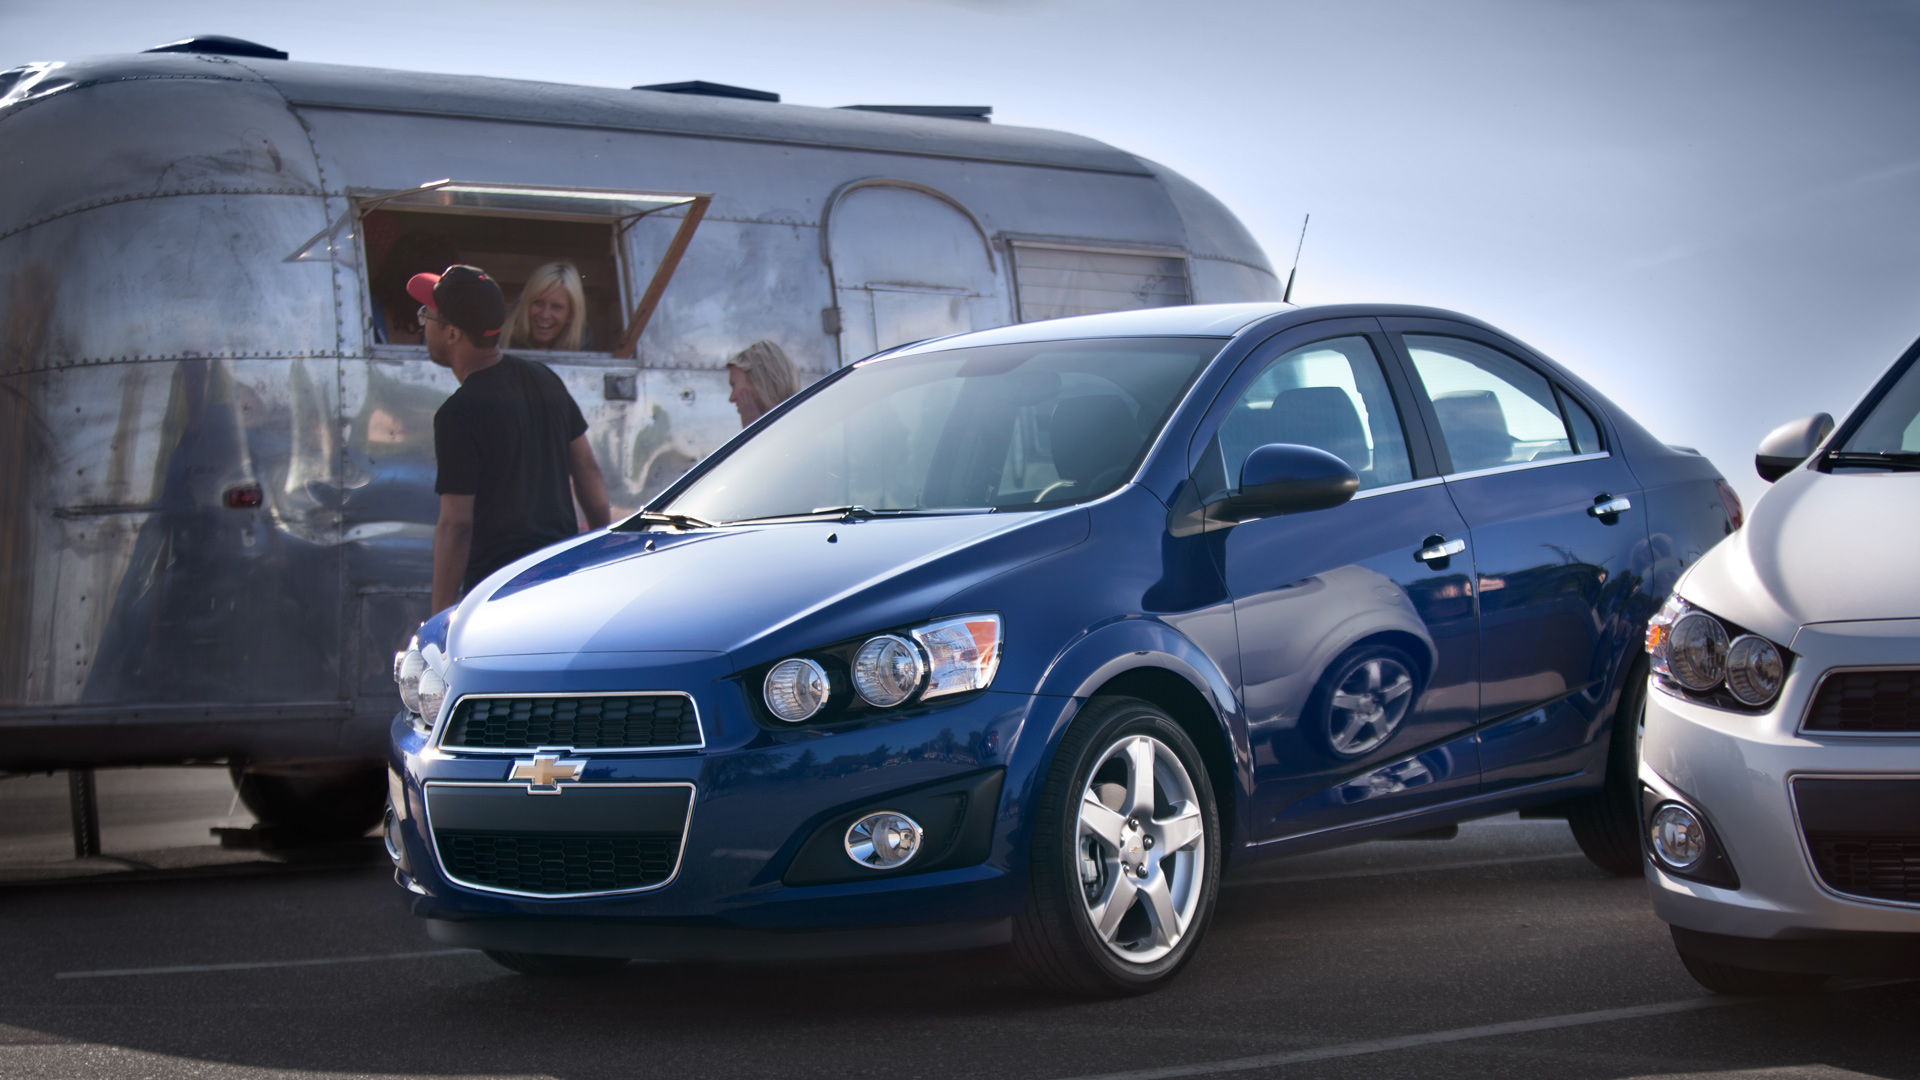 Chevrolet Sonic Owners Manual: TPMS Sensor Matching Process